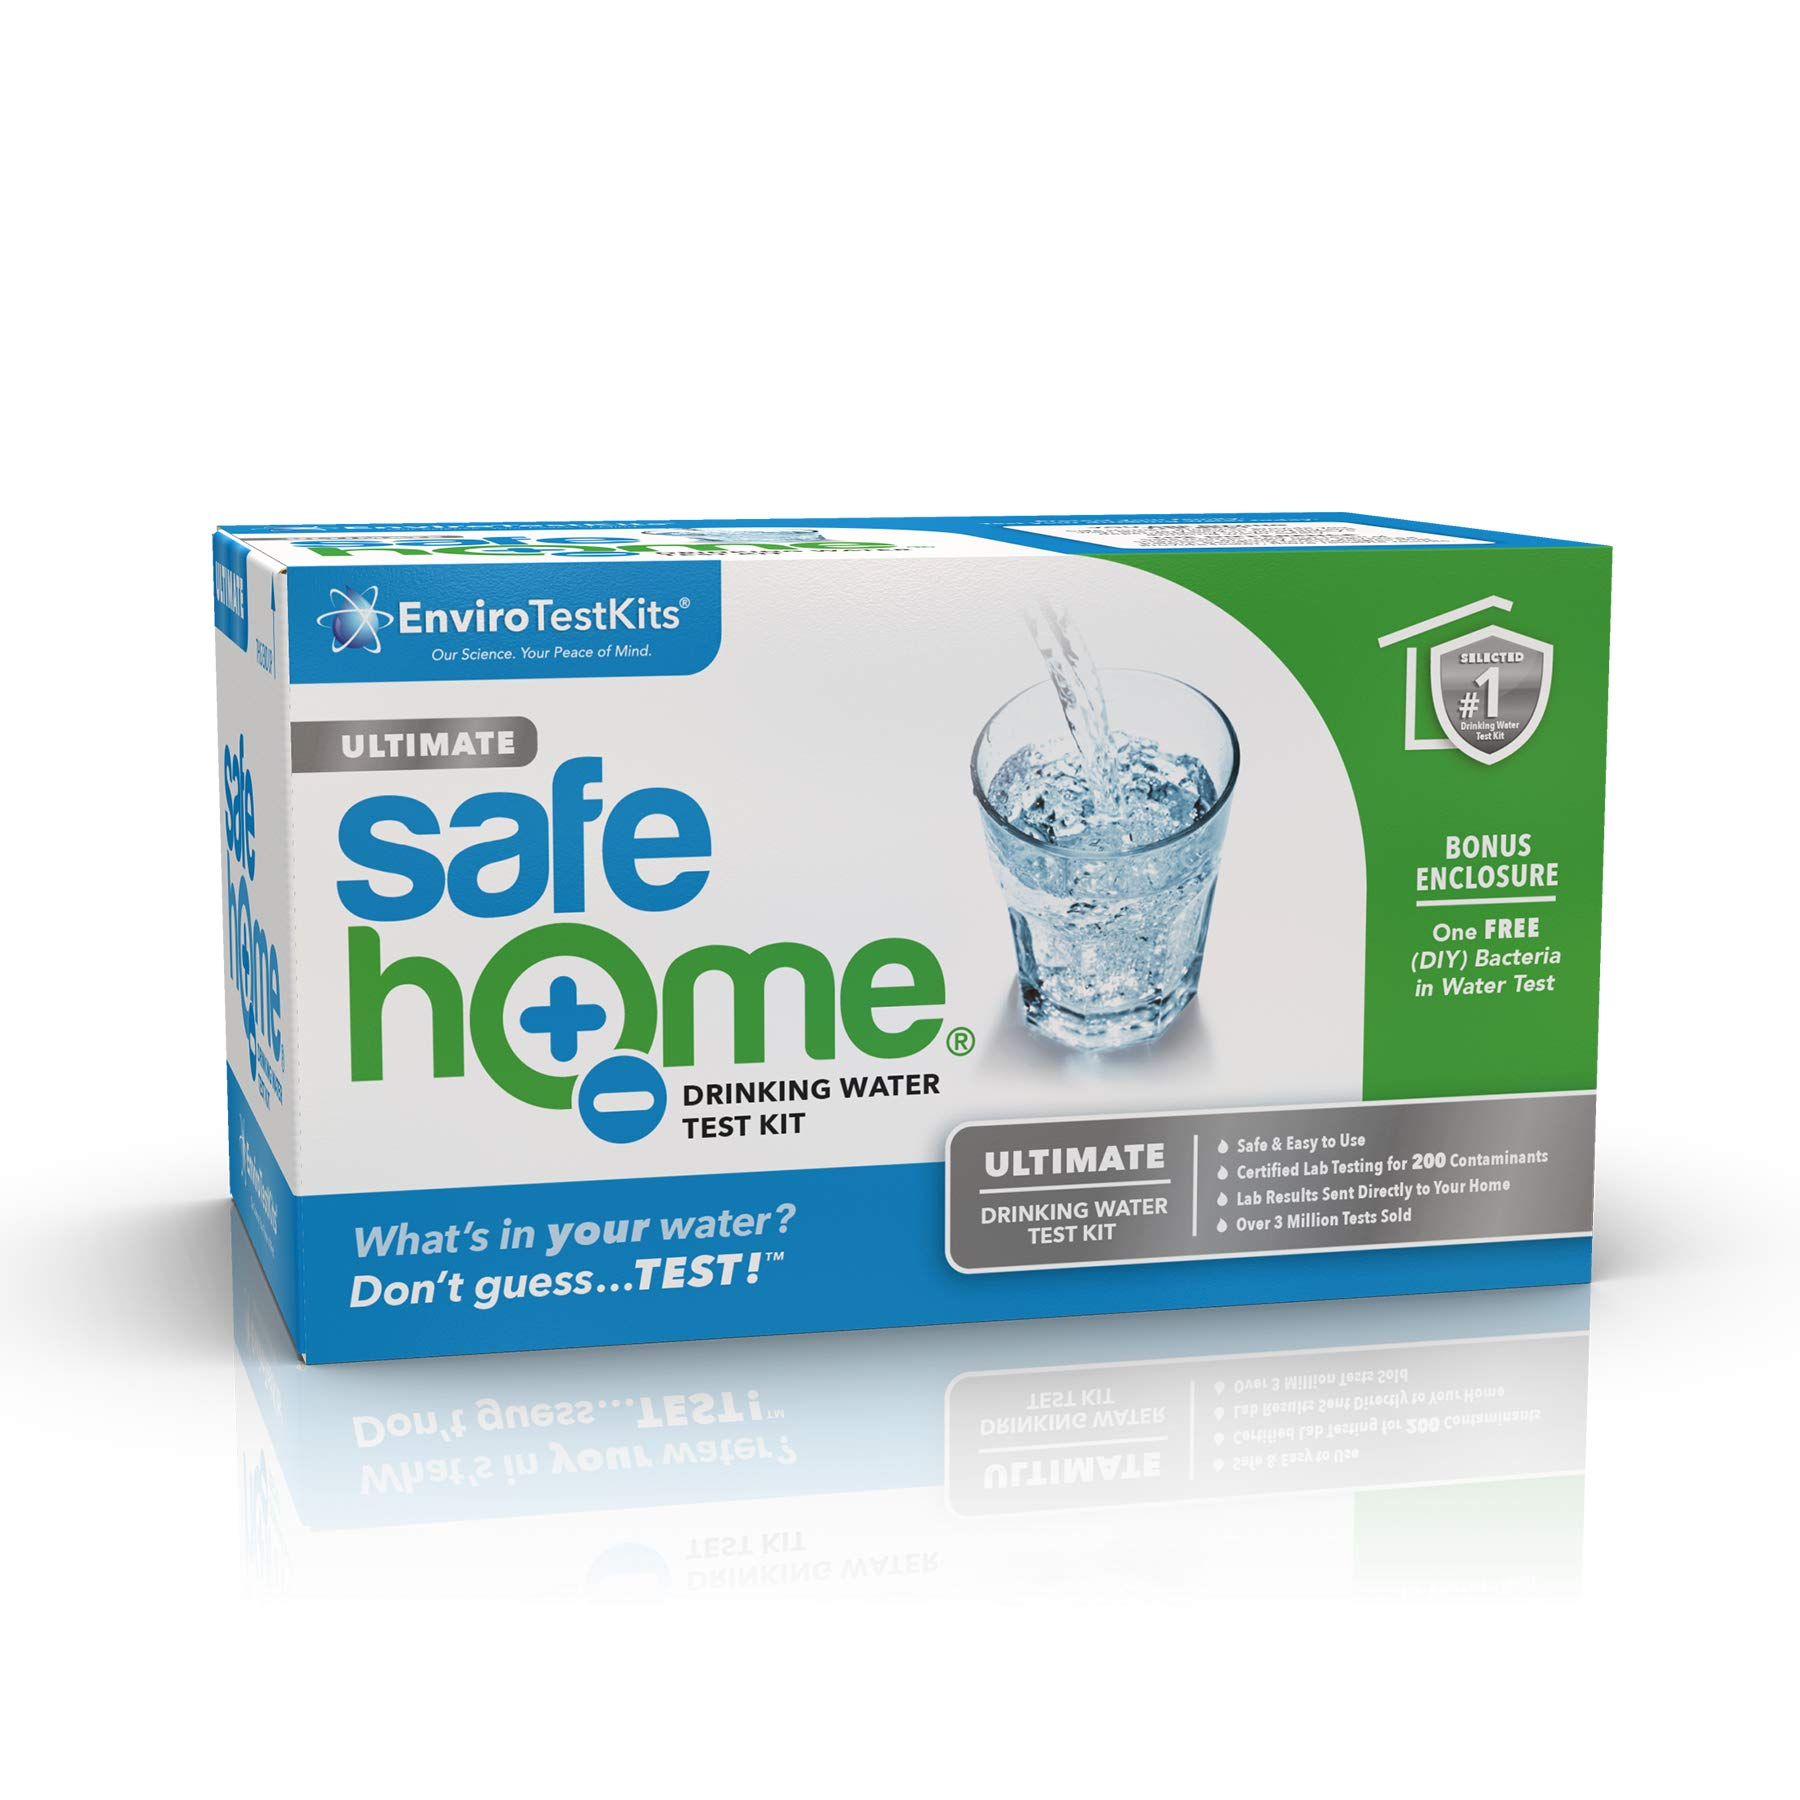 Safe Home ULTIMATE Drinking Water Test Kit - Our #1 Value for Testing CITY & WELL WATER - 200 Contaminants Tested at Our EPA Certified Laboratory - Don't Guess...TEST! by Safe Home